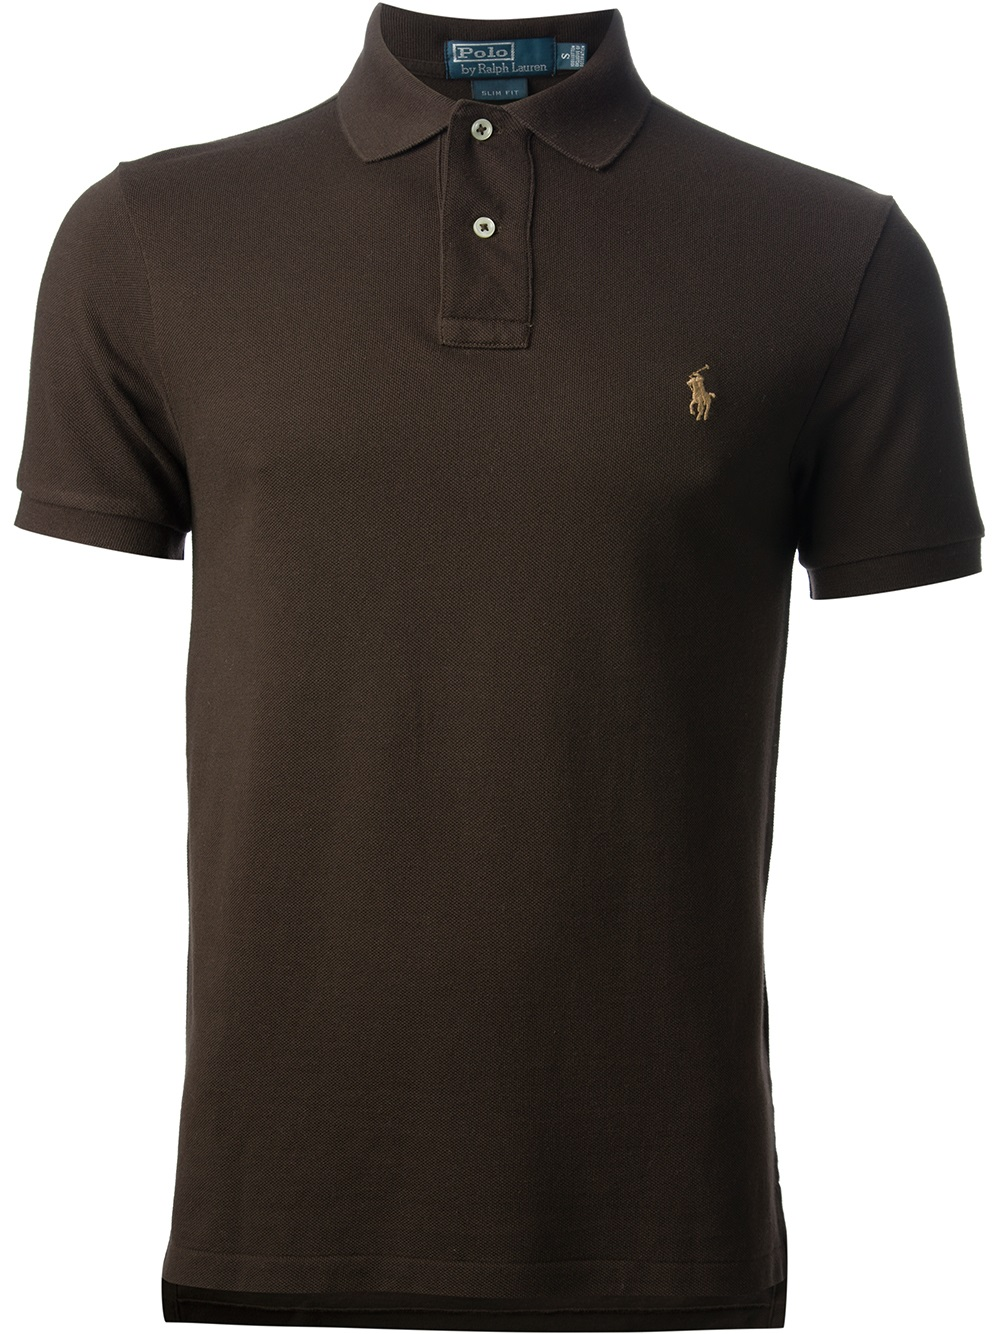 marketing polo ralph lauren essay Brands will create a new sub-brand with a rising market during the  known  flagship brand is polo ralph lauren sebra1 however, the  in this essay, the  main topic will be focus on the reasons for failed of ralph lauren.